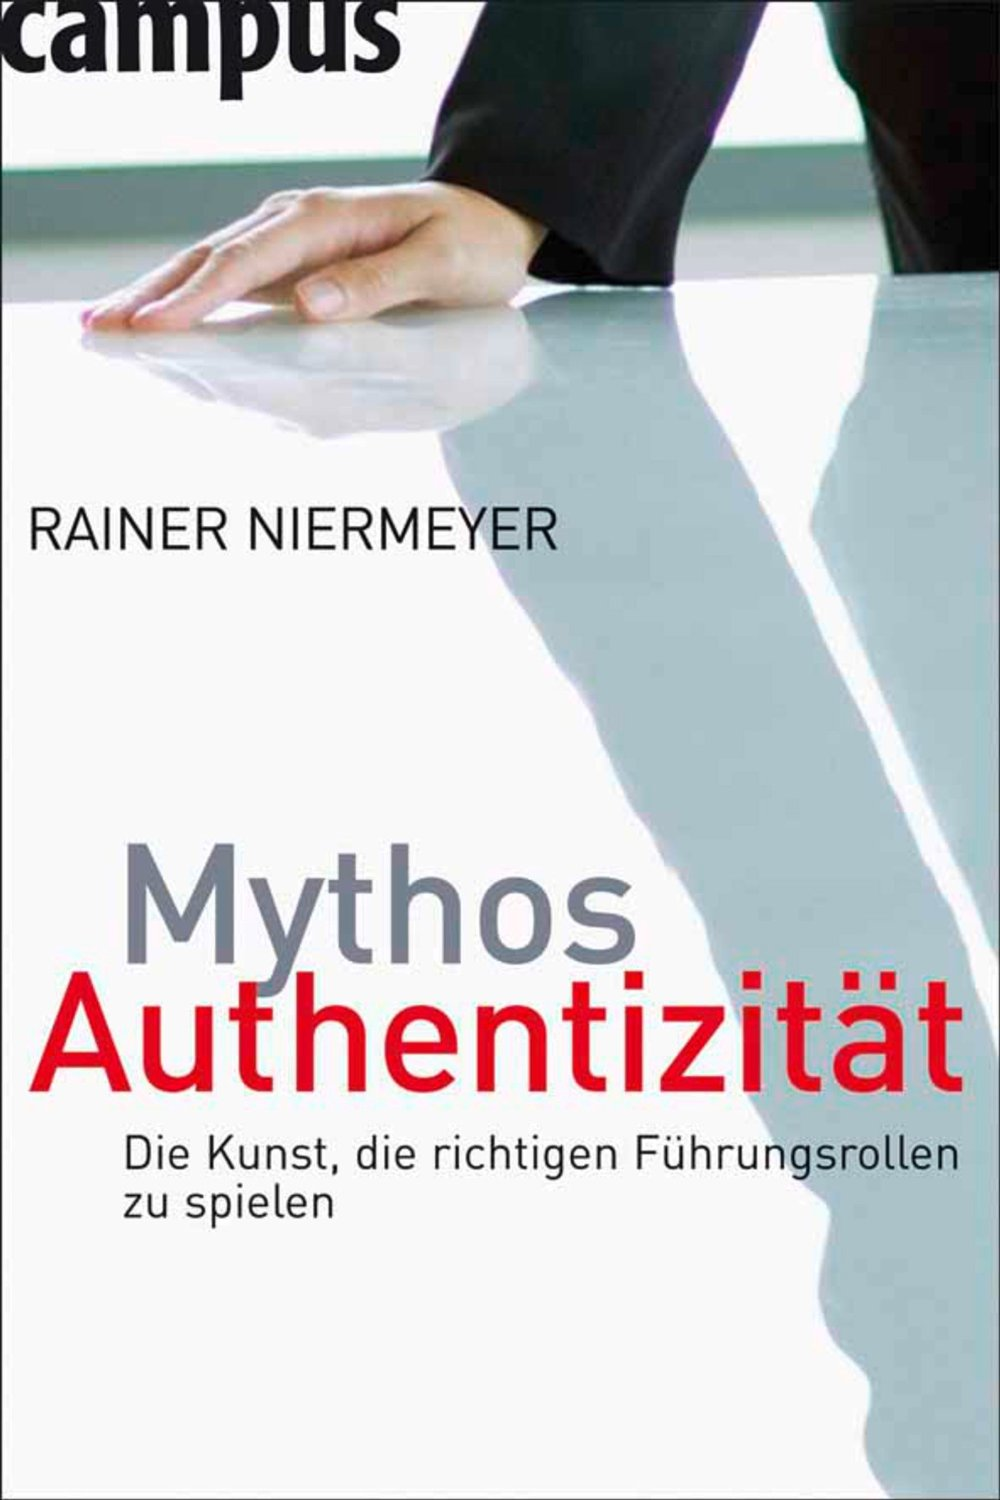 Expert Marketplace -  Rainer Niermeyer  -  Rainer Niermeyer: Mythos Authentizität